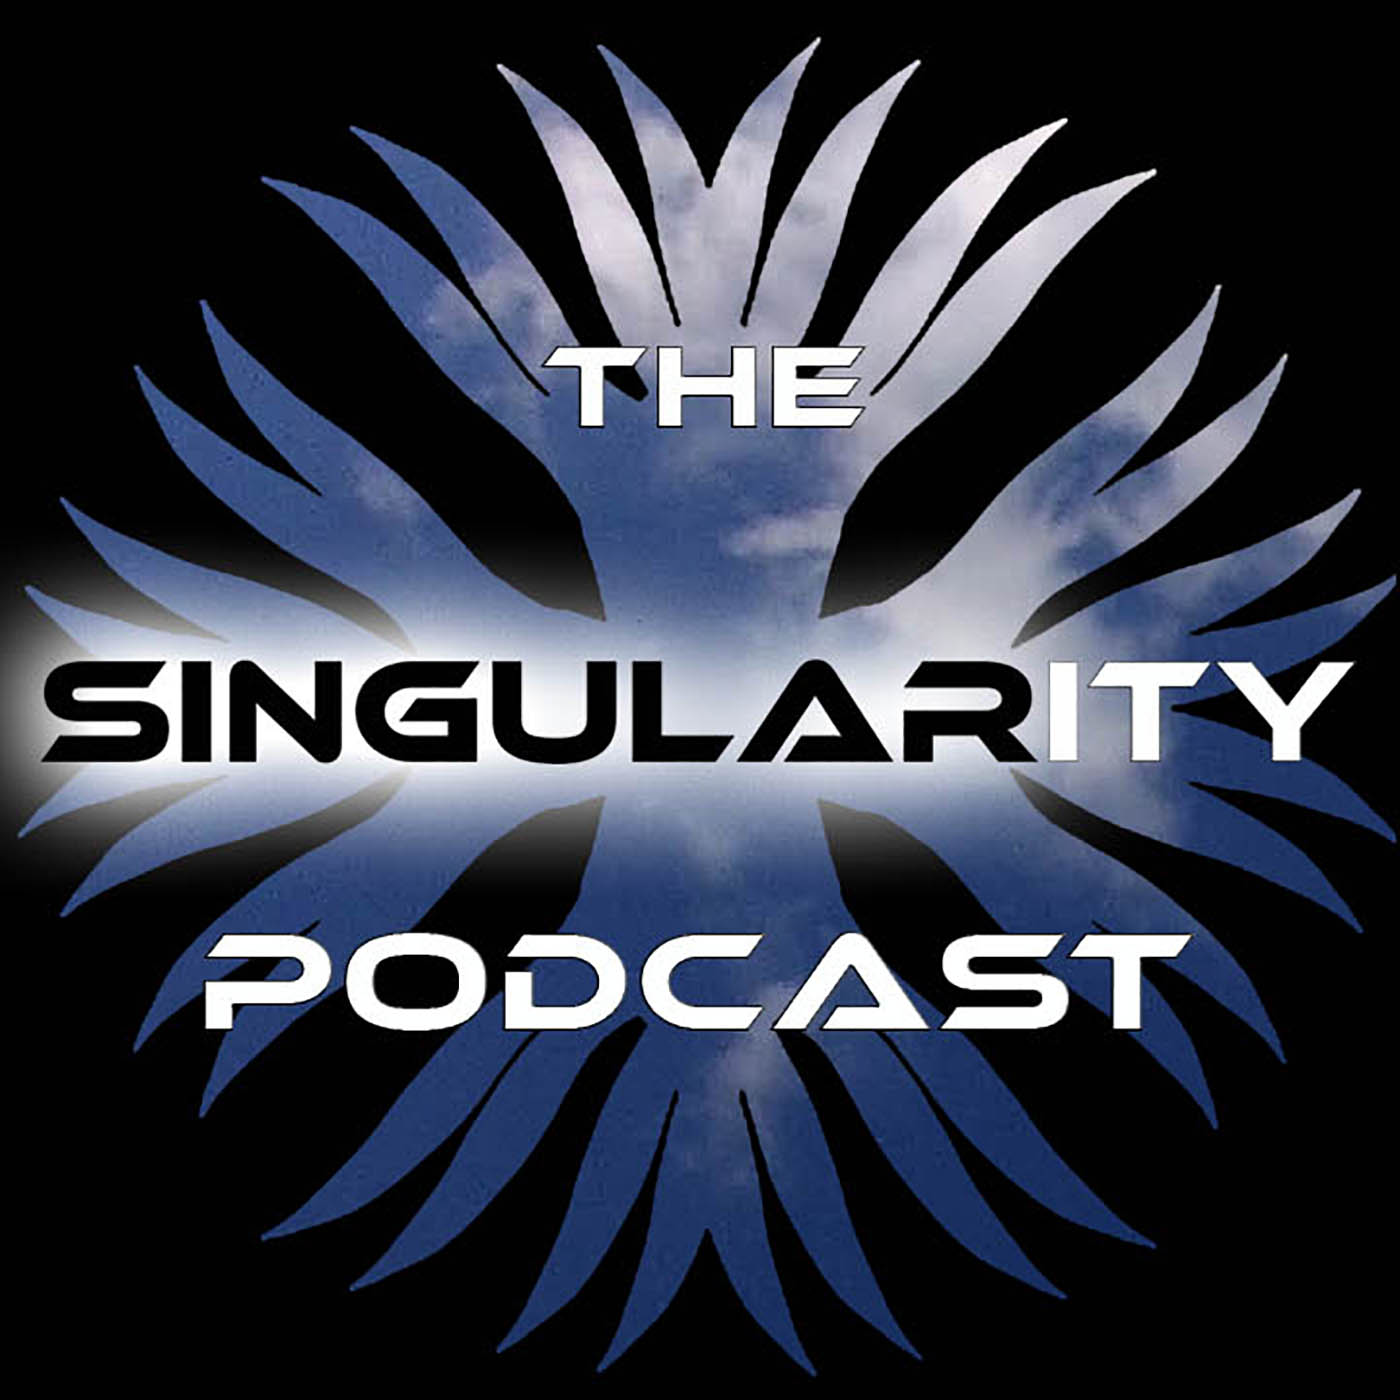 The Singularity Podcast